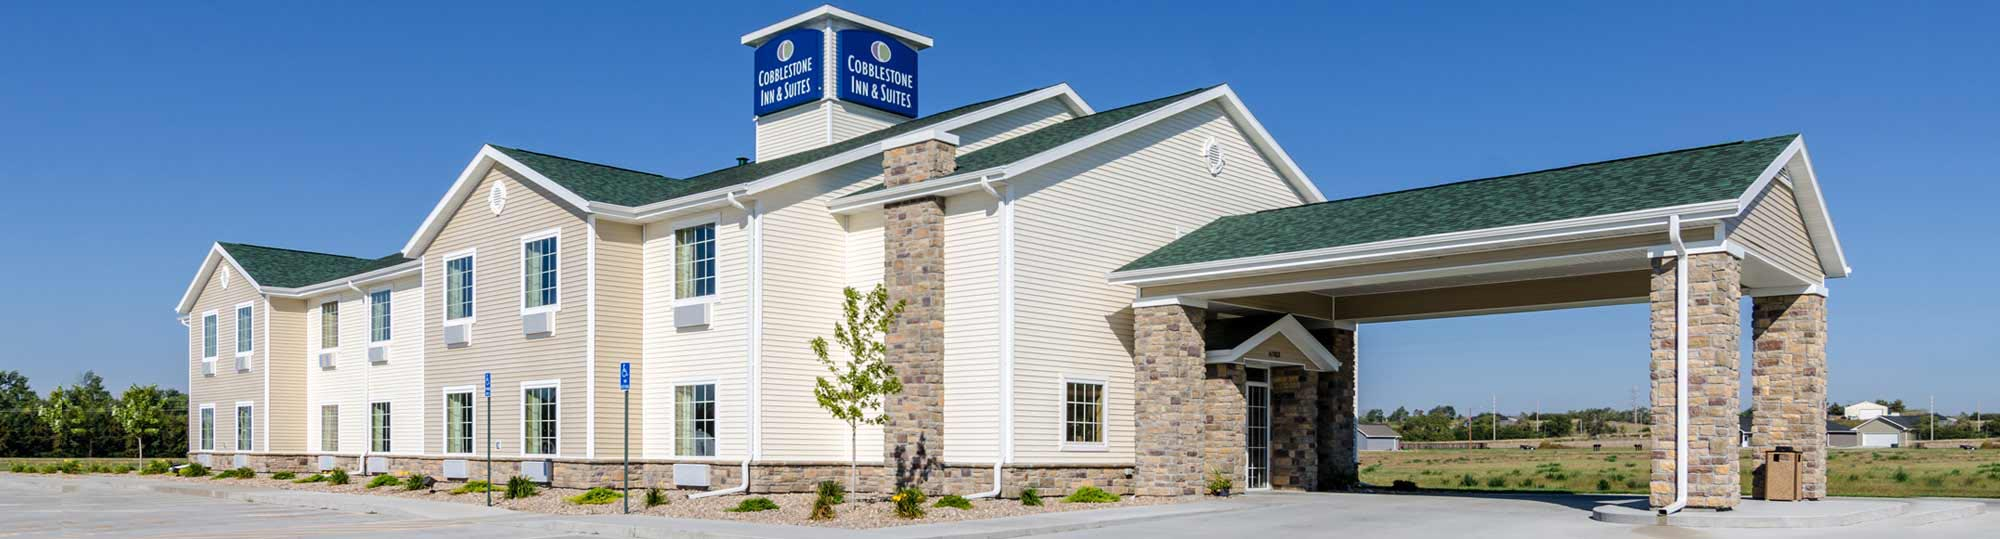 Cobblestone Inn & Suites Cambridge